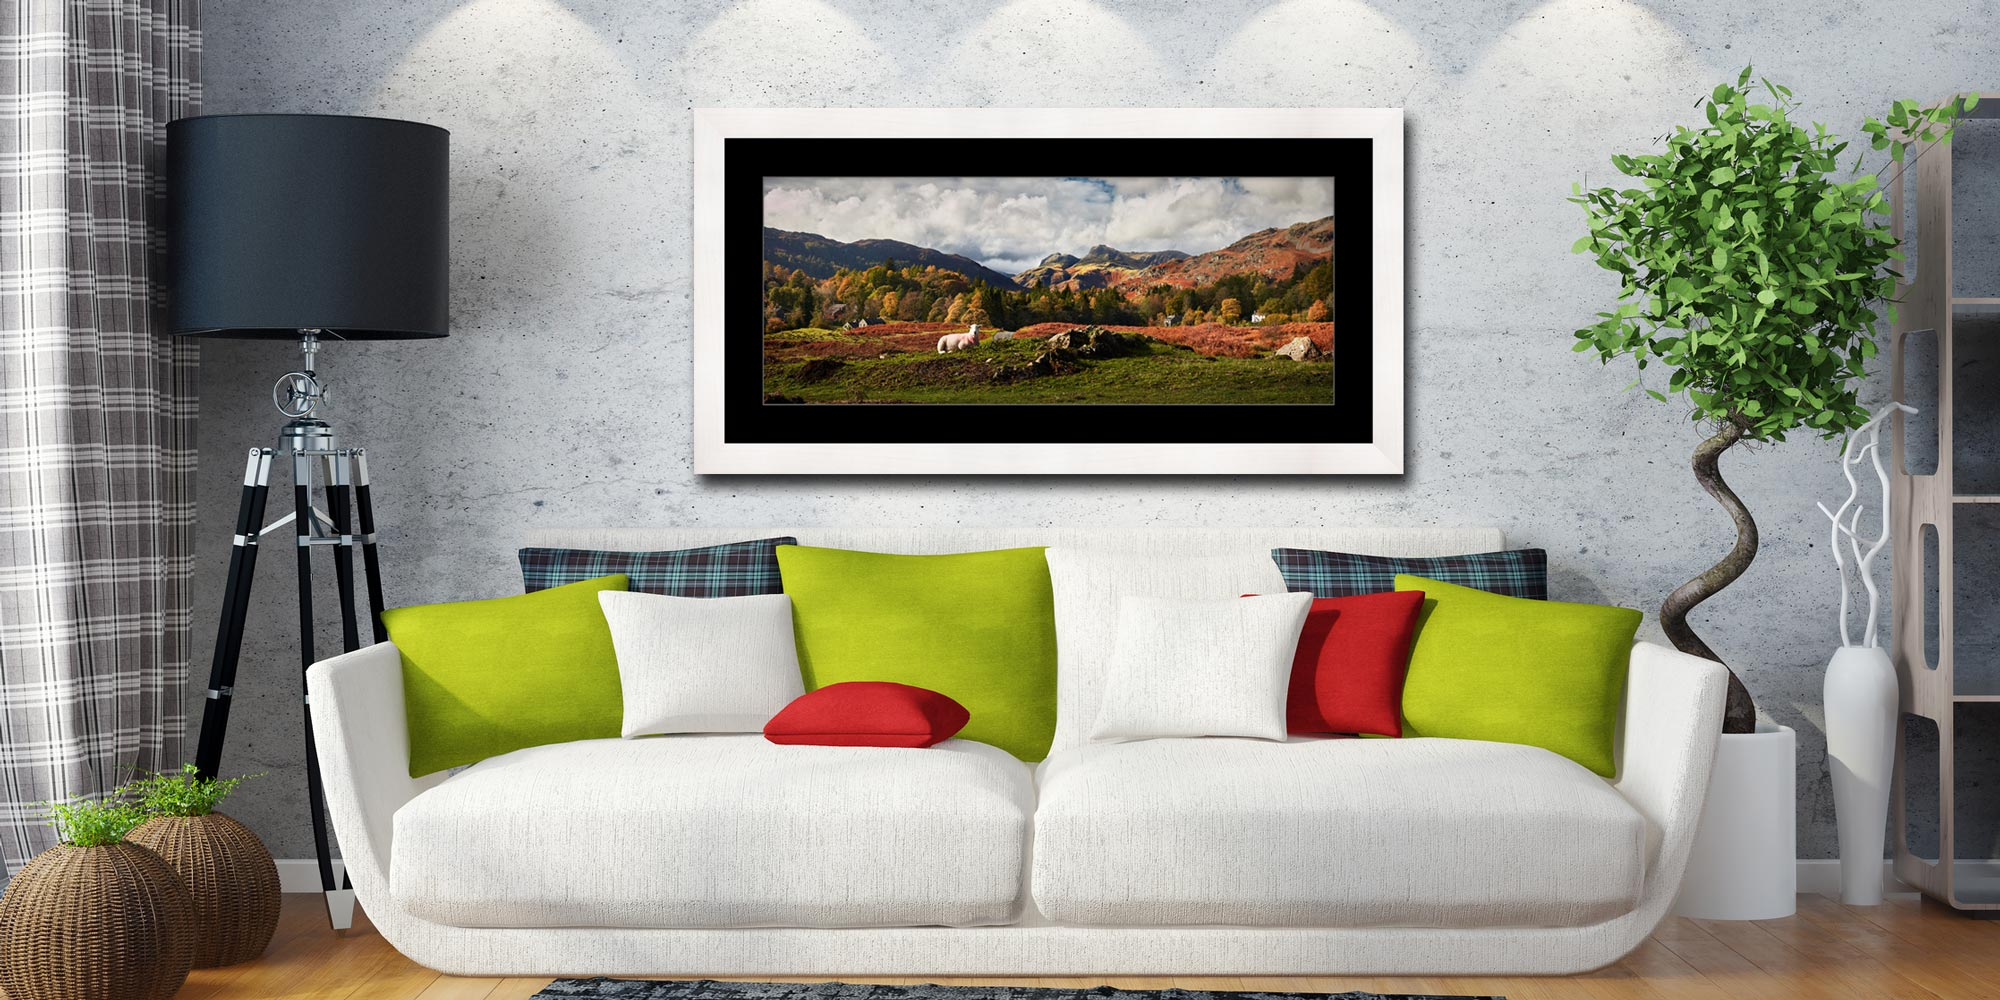 Sheep on Elterwater Common - Framed Print with Mount on Wall